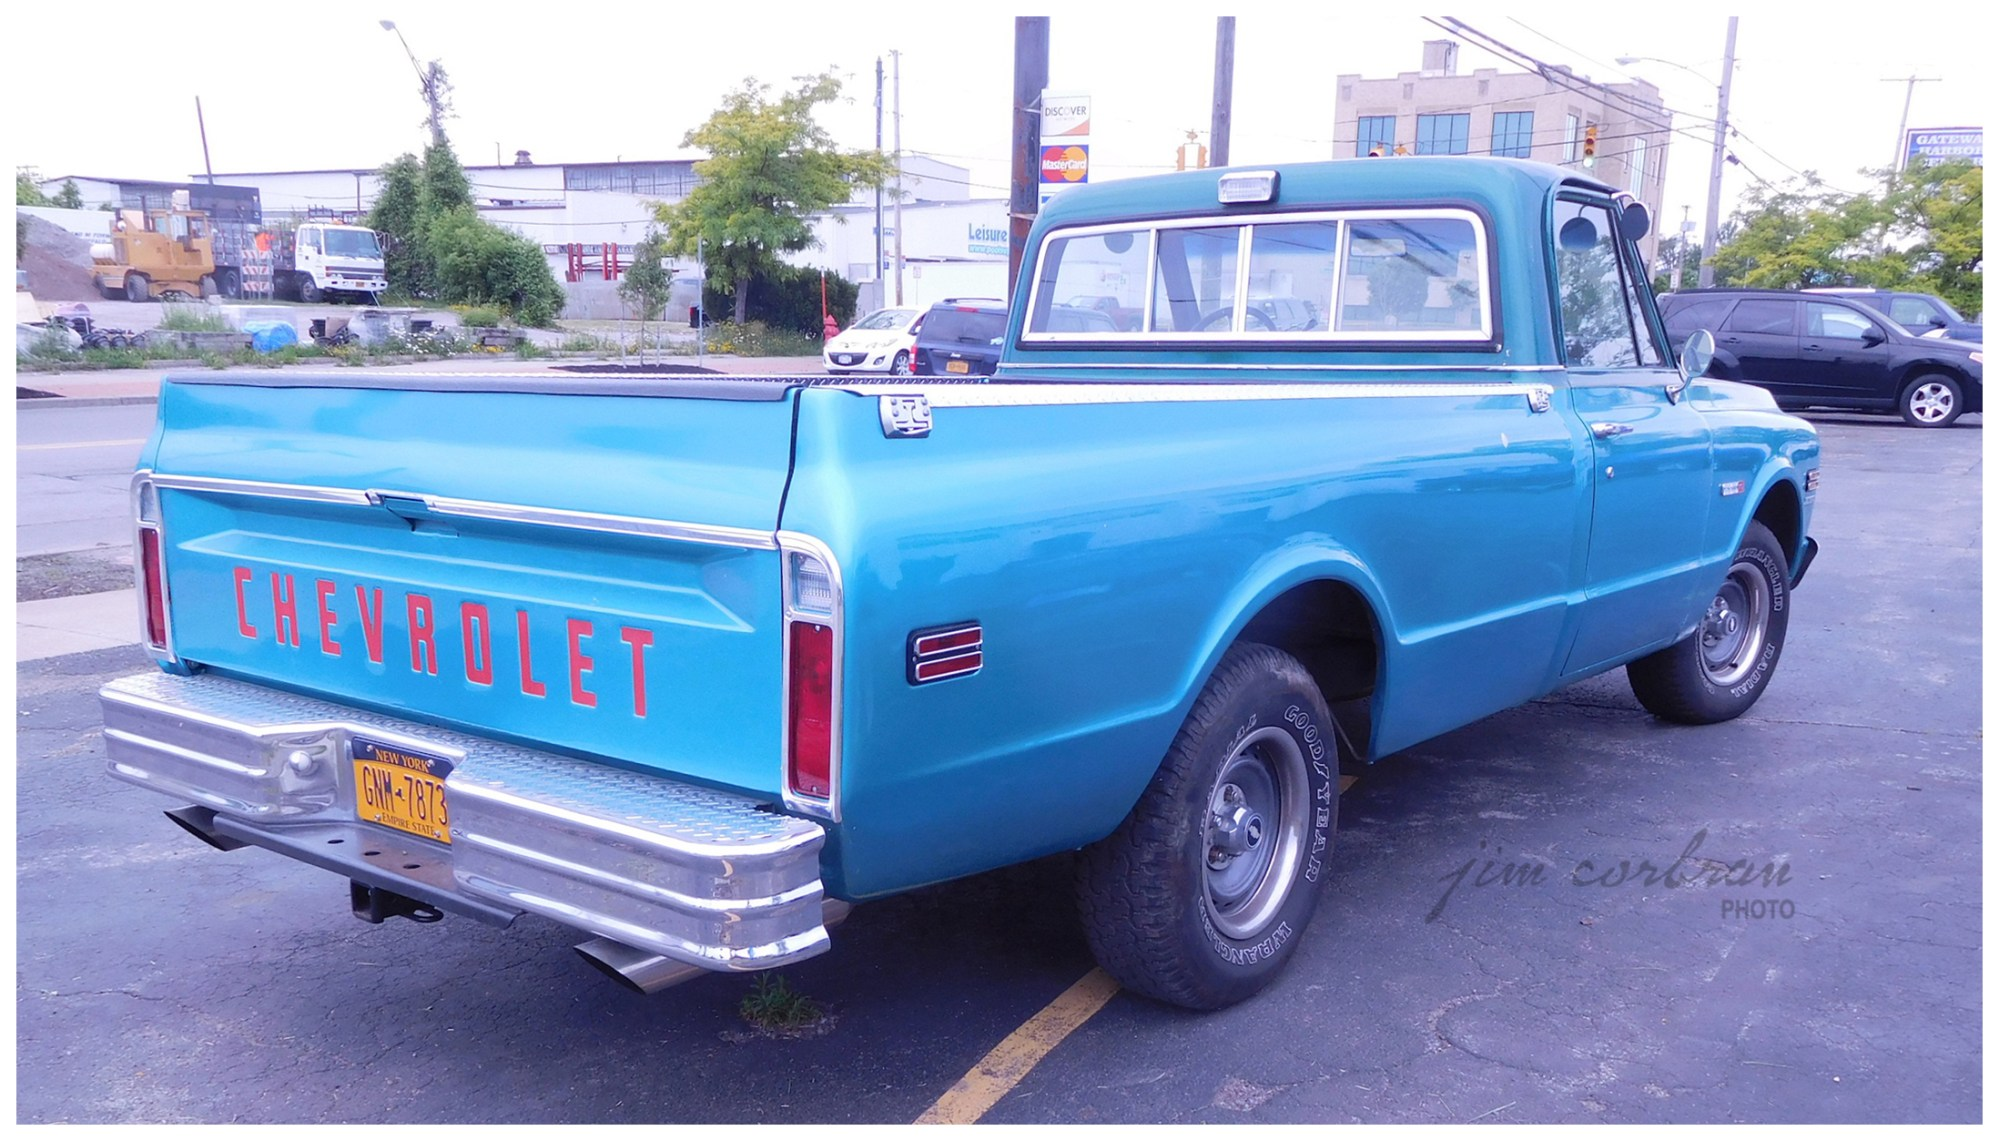 hight resolution of nice to see a blast from the past like this 1971 chevy c10 cheyenne just up the street from the realrides city of tonawanda headquarters over the summer